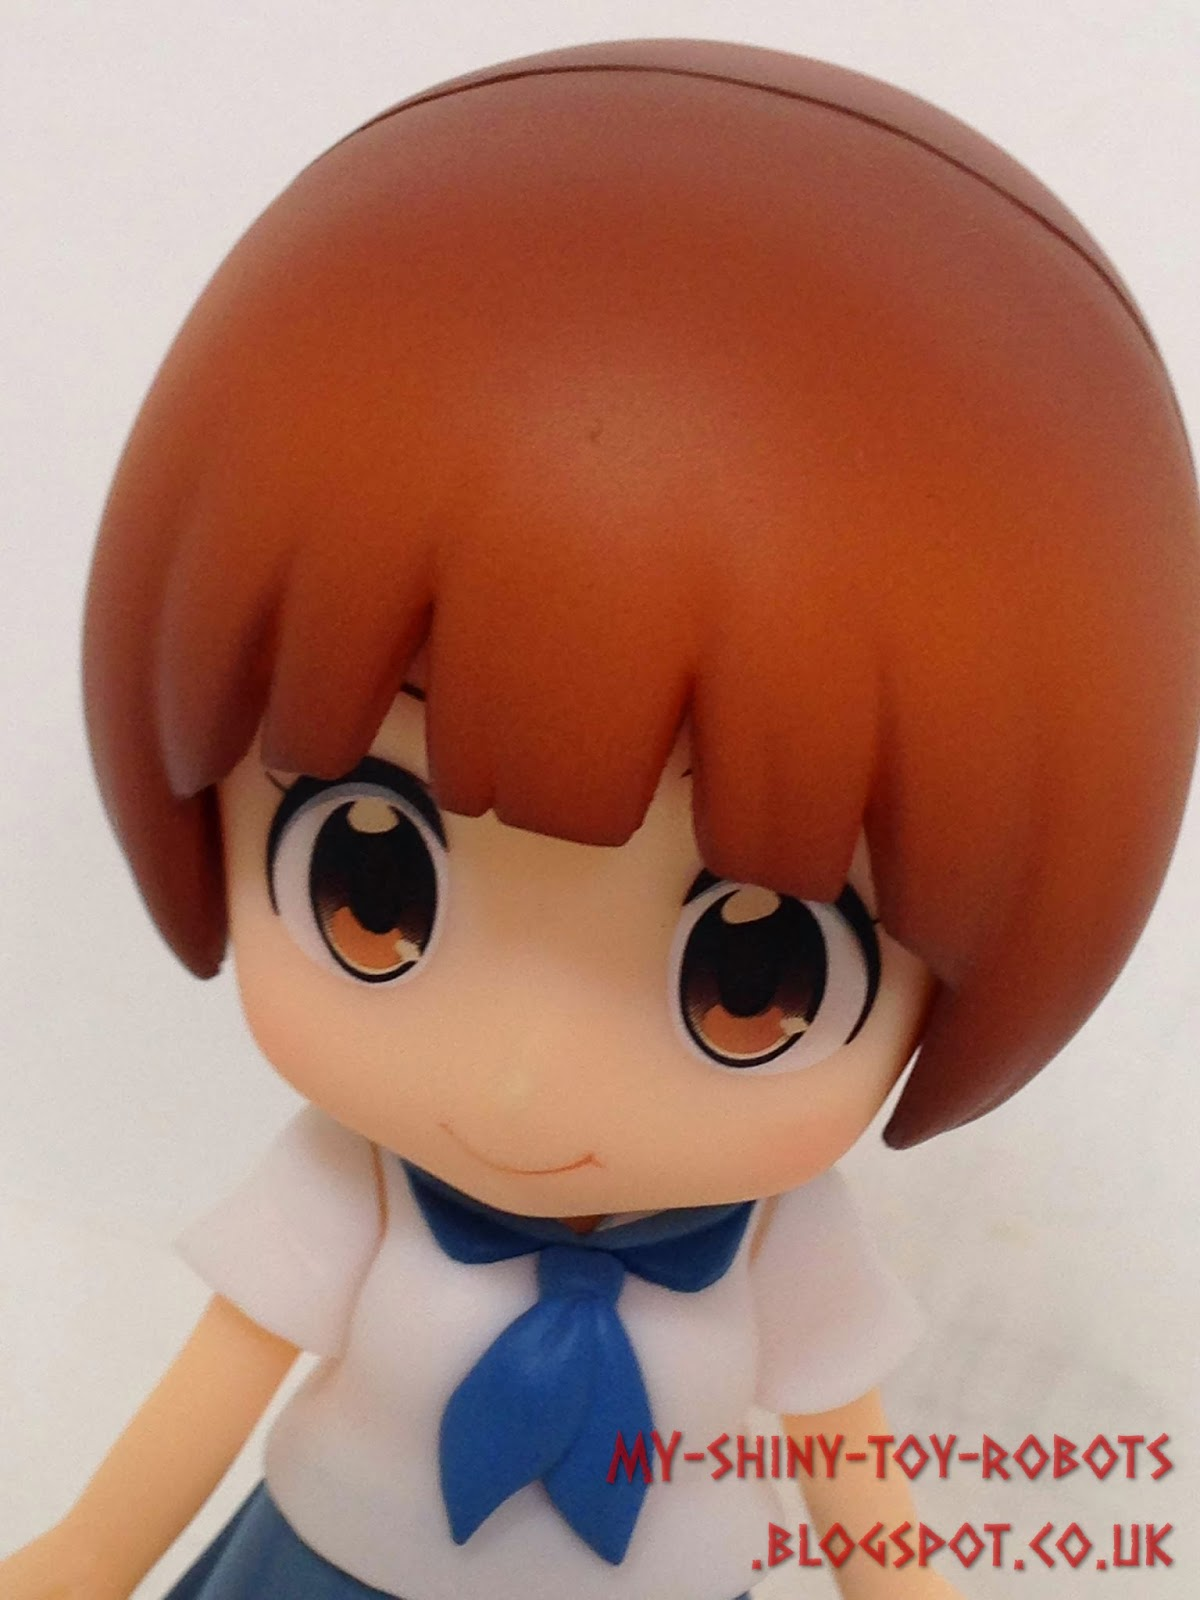 Nendoroid Mako Mankanshoku from Kill la Kill